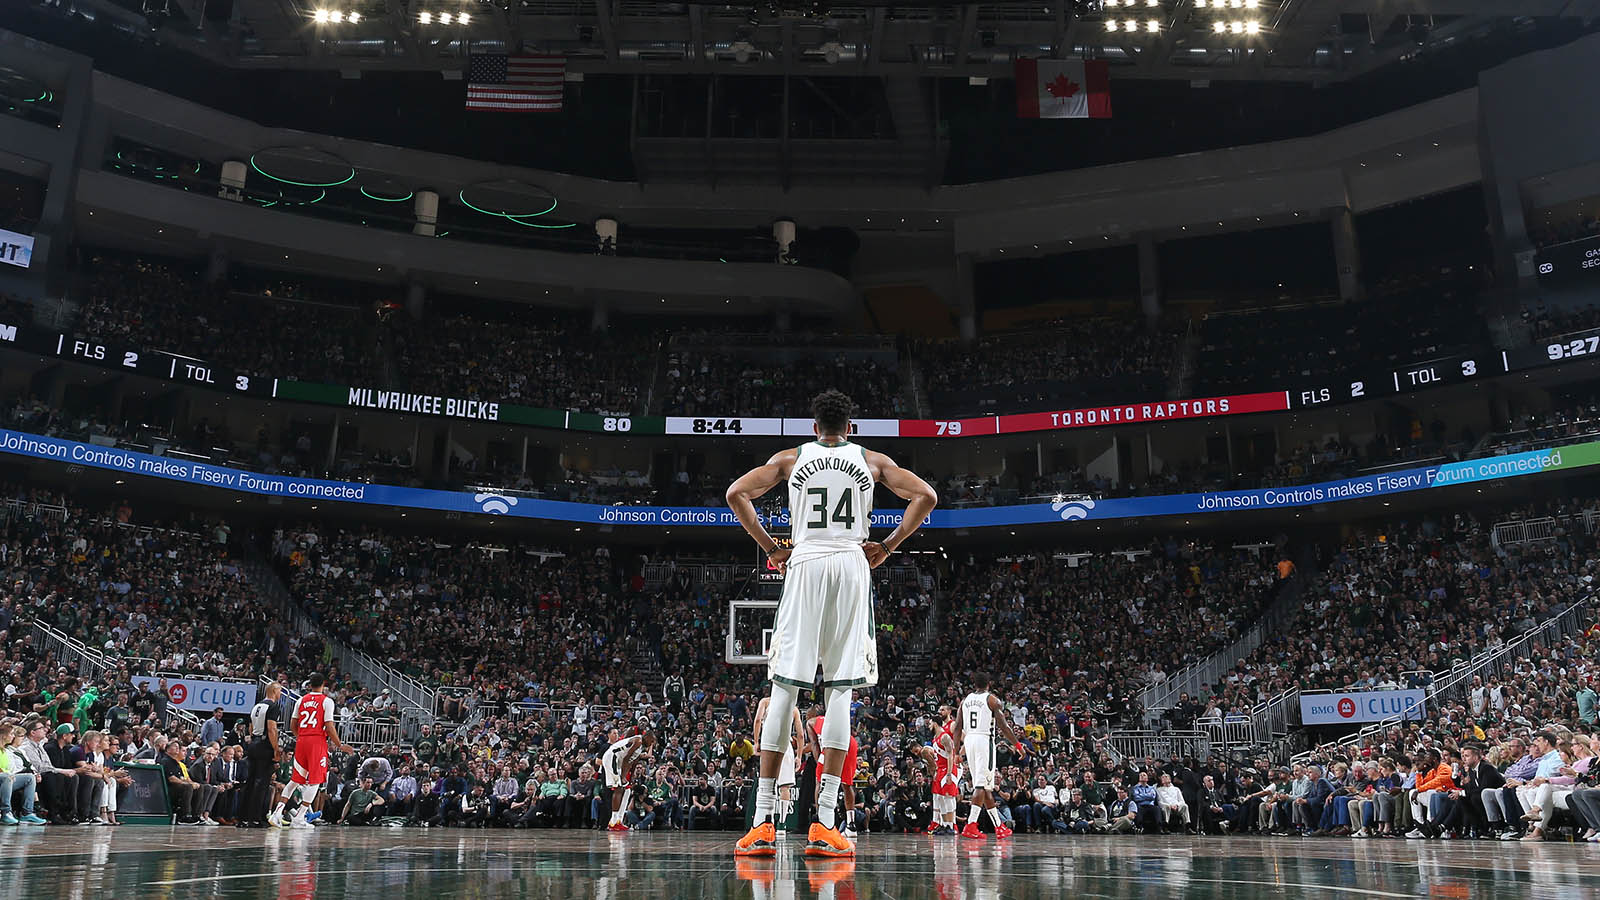 MILWAUKEE, WI - MAY 23: Giannis Antetokounmpo #34 of the Milwaukee Bucks looks on against the Toronto Raptors during Game Five of the Eastern Conference Finals of the 2019 NBA Playoffs on May 23, 2019 at the Fiserv Forum Center in Milwaukee, Wisconsin. NOTE TO USER: User expressly acknowledges and agrees that, by downloading and or using this Photograph, user is consenting to the terms and conditions of the Getty Images License Agreement. Mandatory Copyright Notice: Copyright 2019 NBAE (Photo by Nathaniel S. Butler/NBAE via Getty Images).